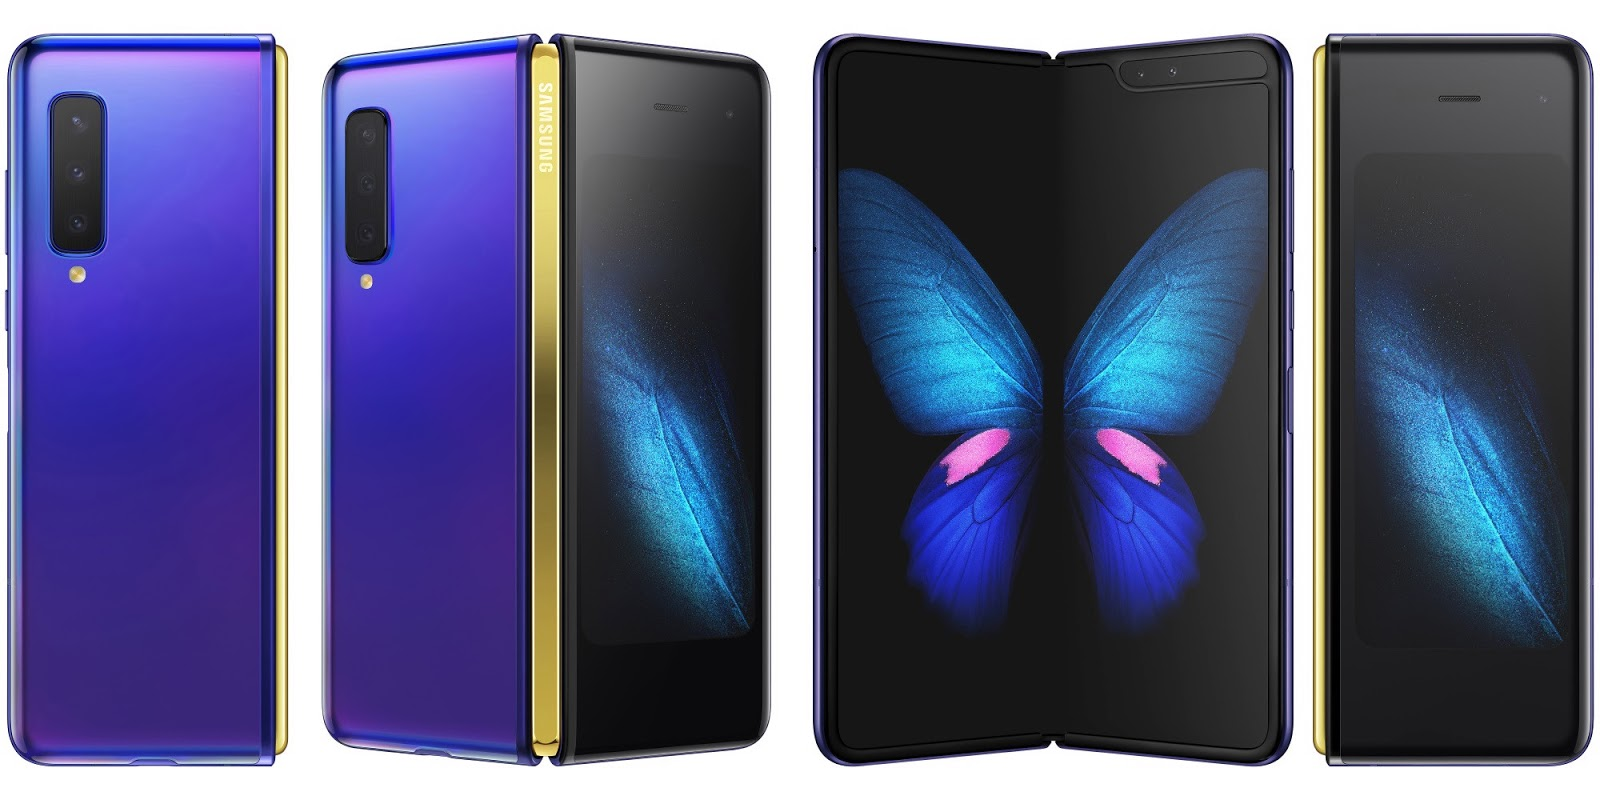 Samsung Galaxy Fold Full Specifications: With 12 GB RAM and Triple Rear Camera